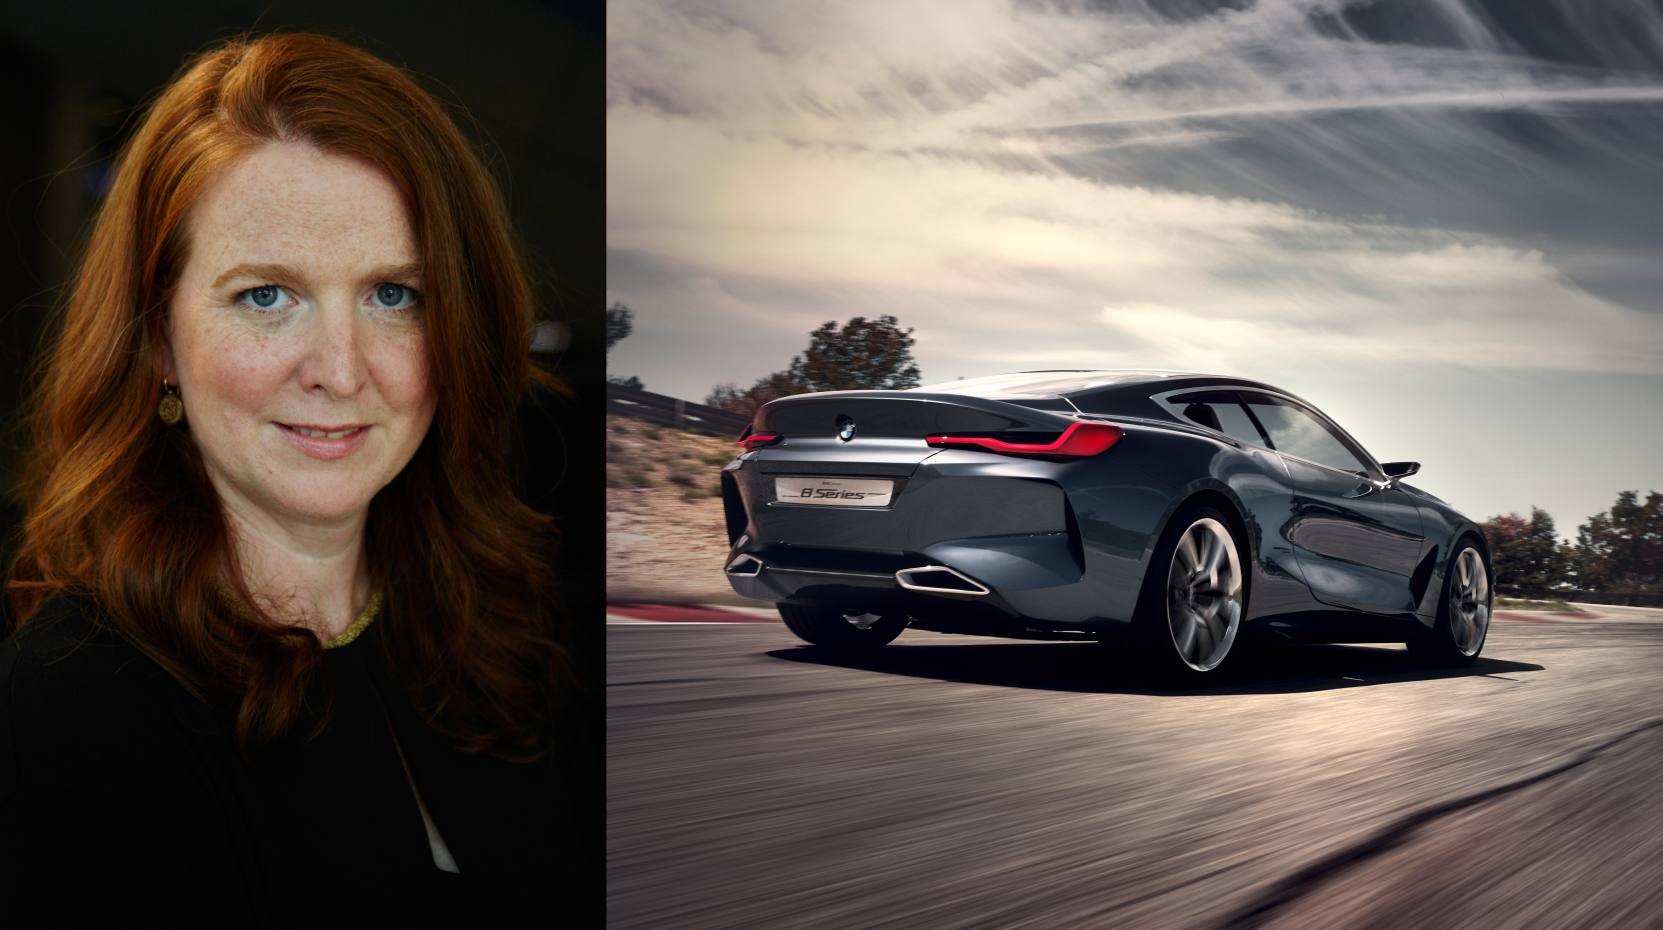 Martina Starke, BMW's head of brand vision and brand design, and the new BMW Concept 8 Series